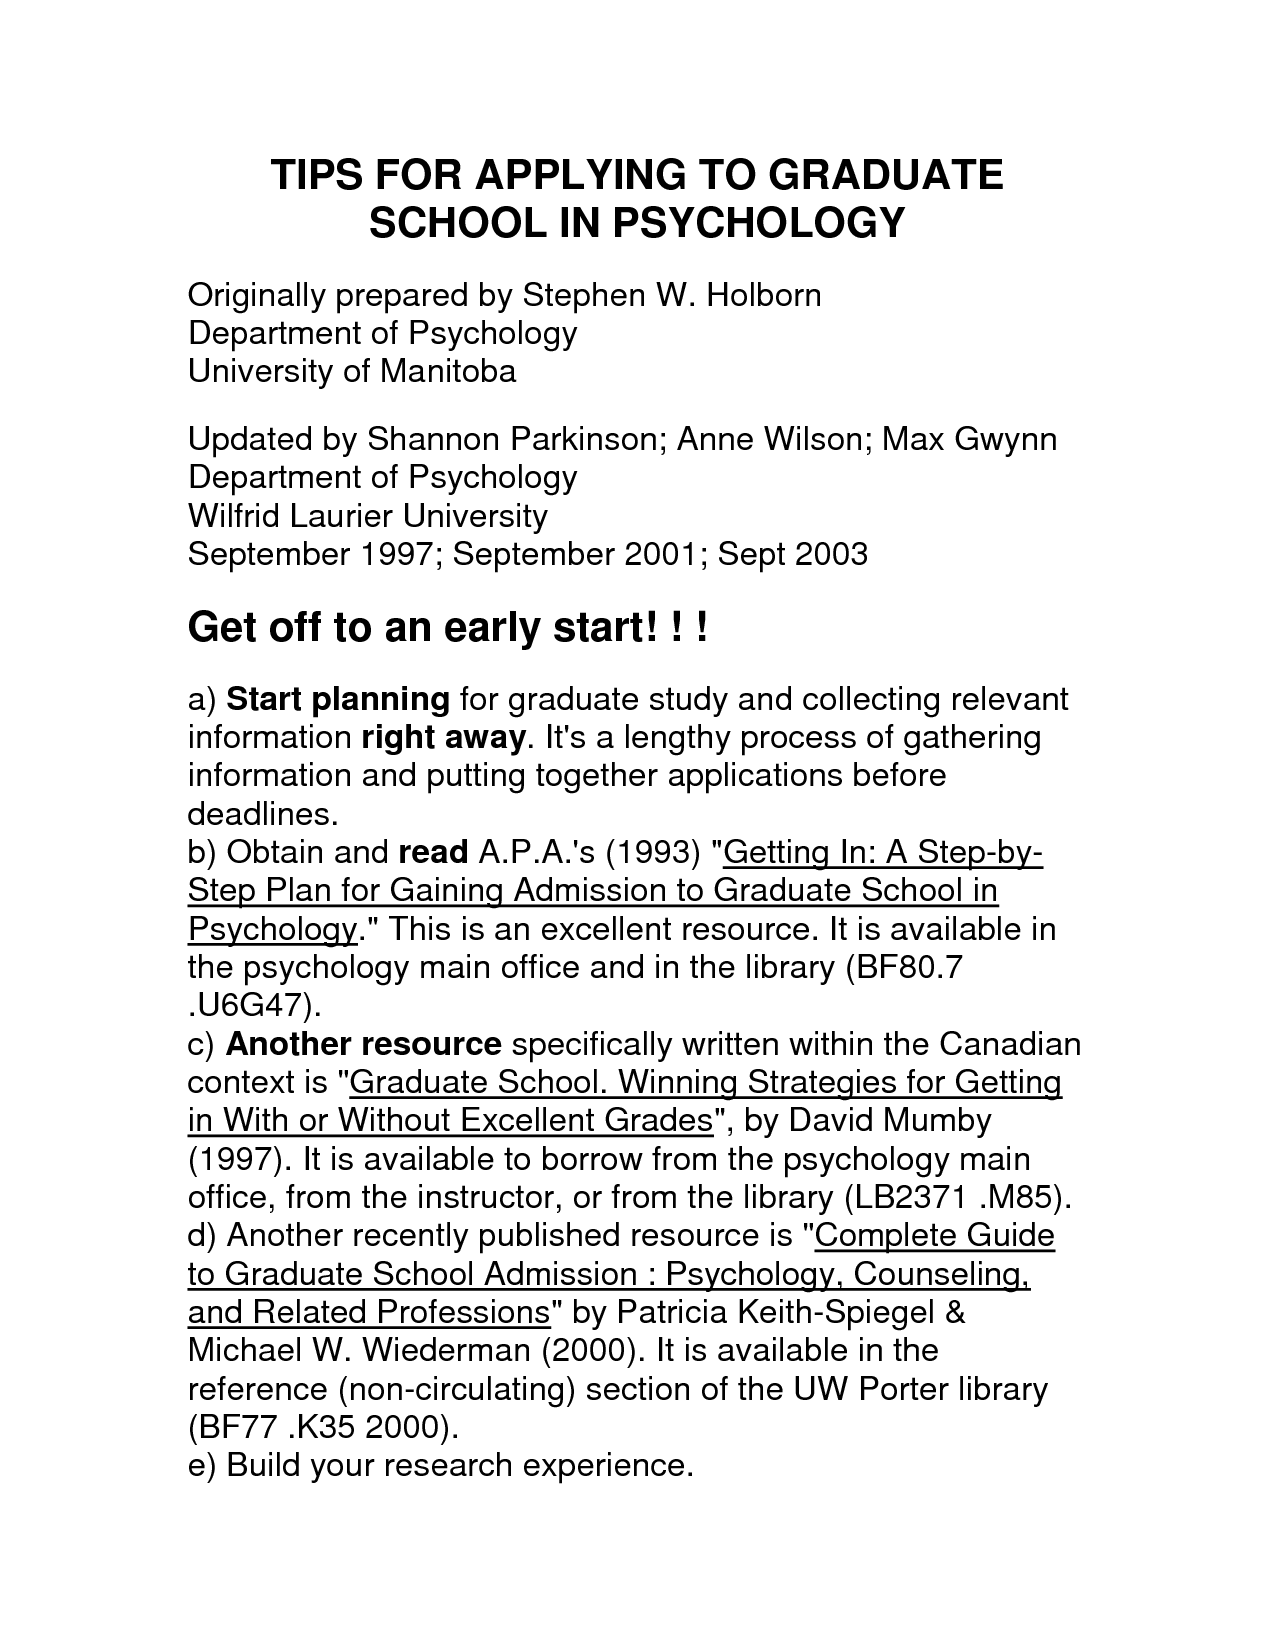 psychology graduate school resume httpwwwresumecareerinfopsychology resume for graduate school - Graduate School Resume